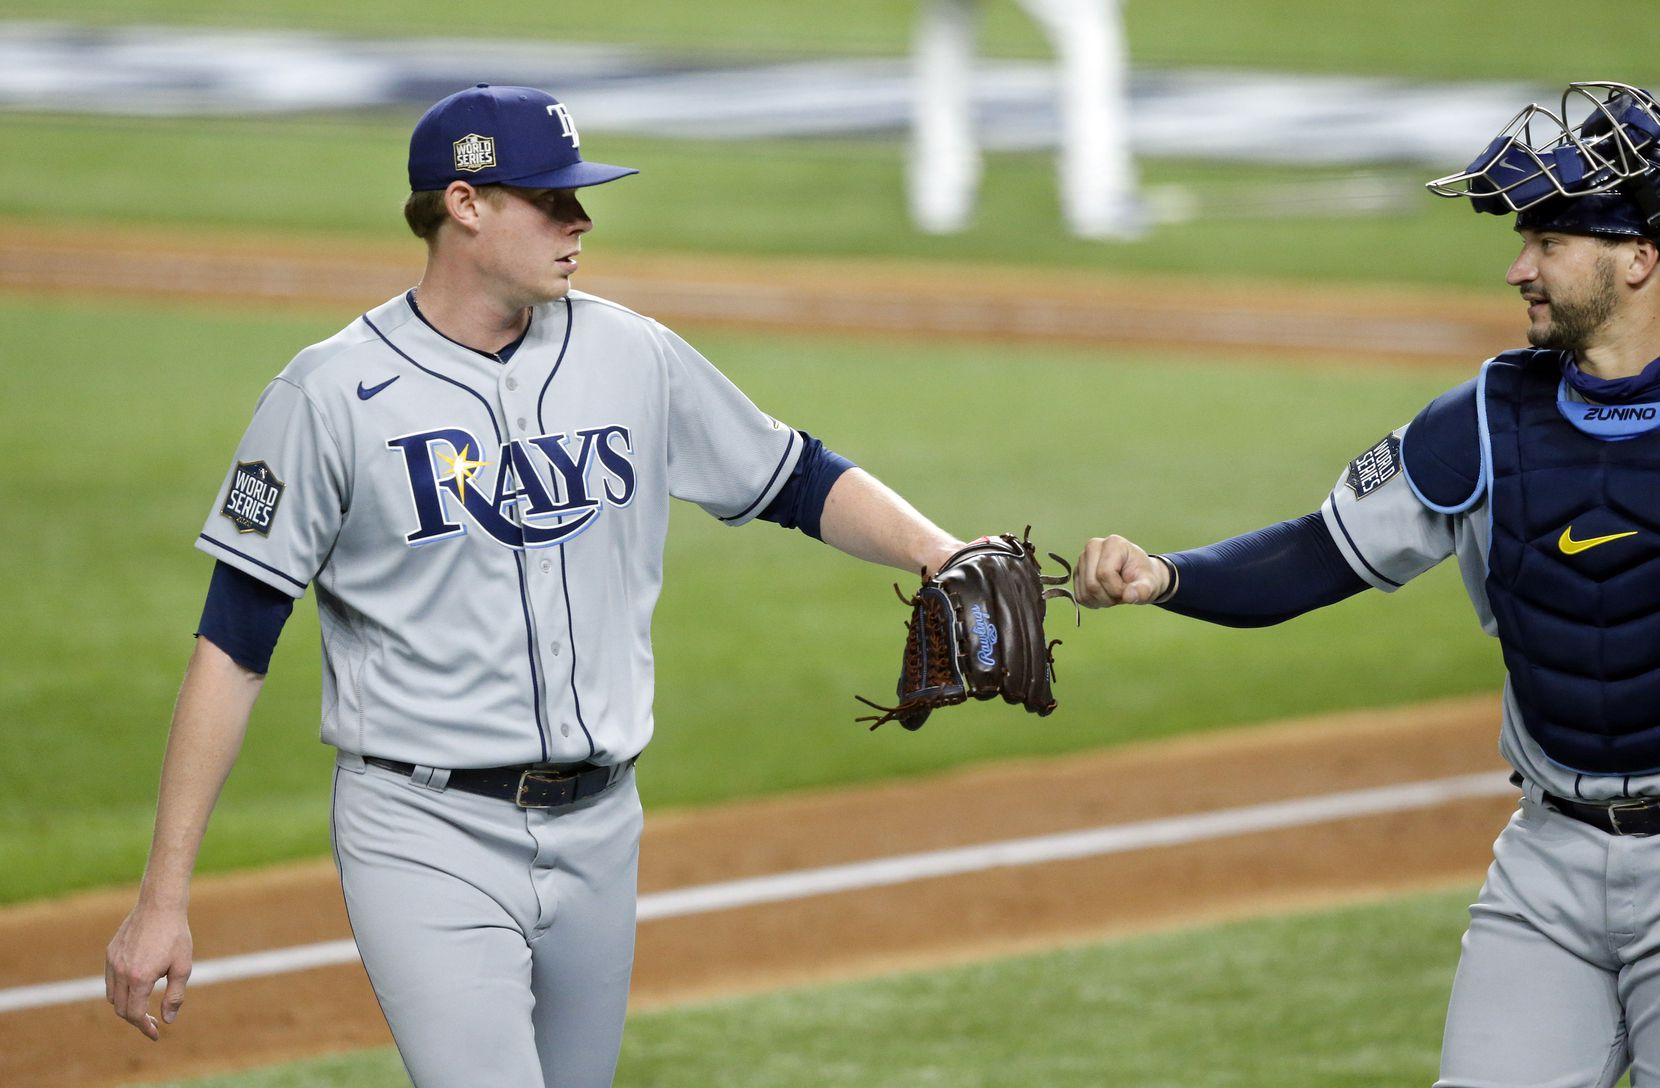 Tampa Bay Rays relief pitcher Peter Fairbanks (29) receives a fist bump from catcher Mike Zunino (10) after getting out of the seventh inning against the Los Angeles Dodgers in Game 2 of the World Series at Globe Life Field in Arlington, Wednesday, October 21, 2020. (Tom Fox/The Dallas Morning News)